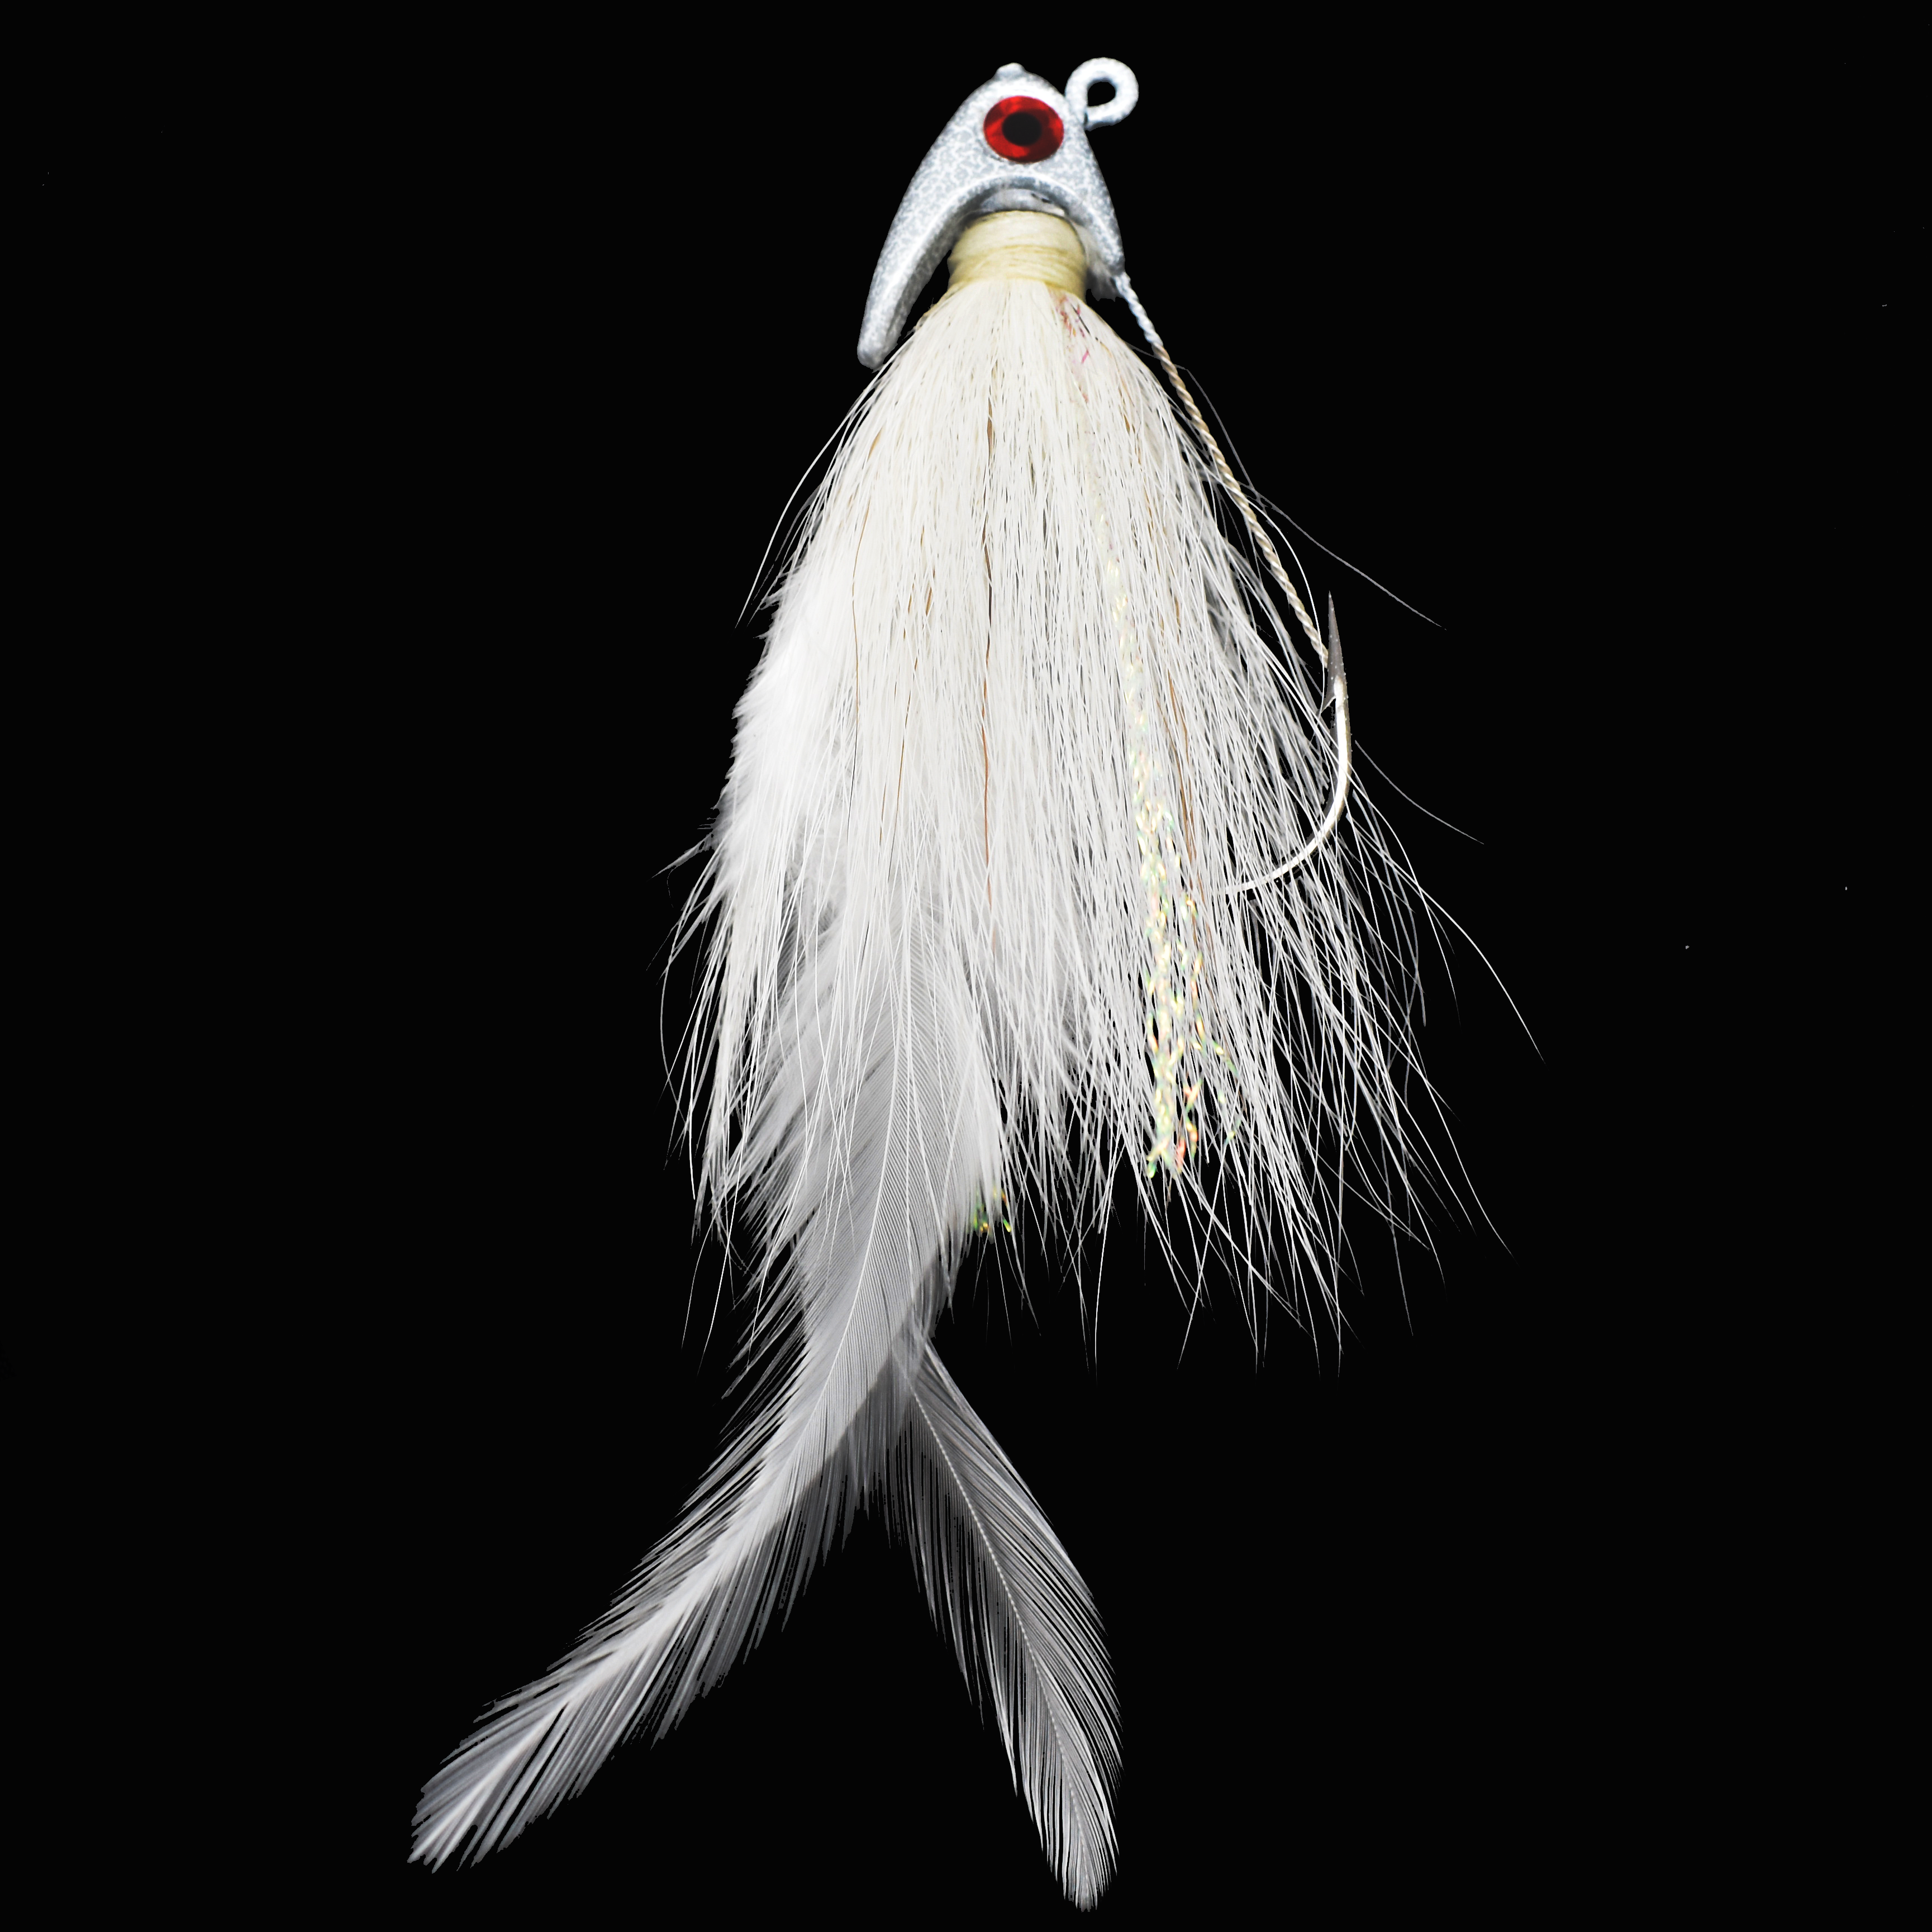 Feather Shad